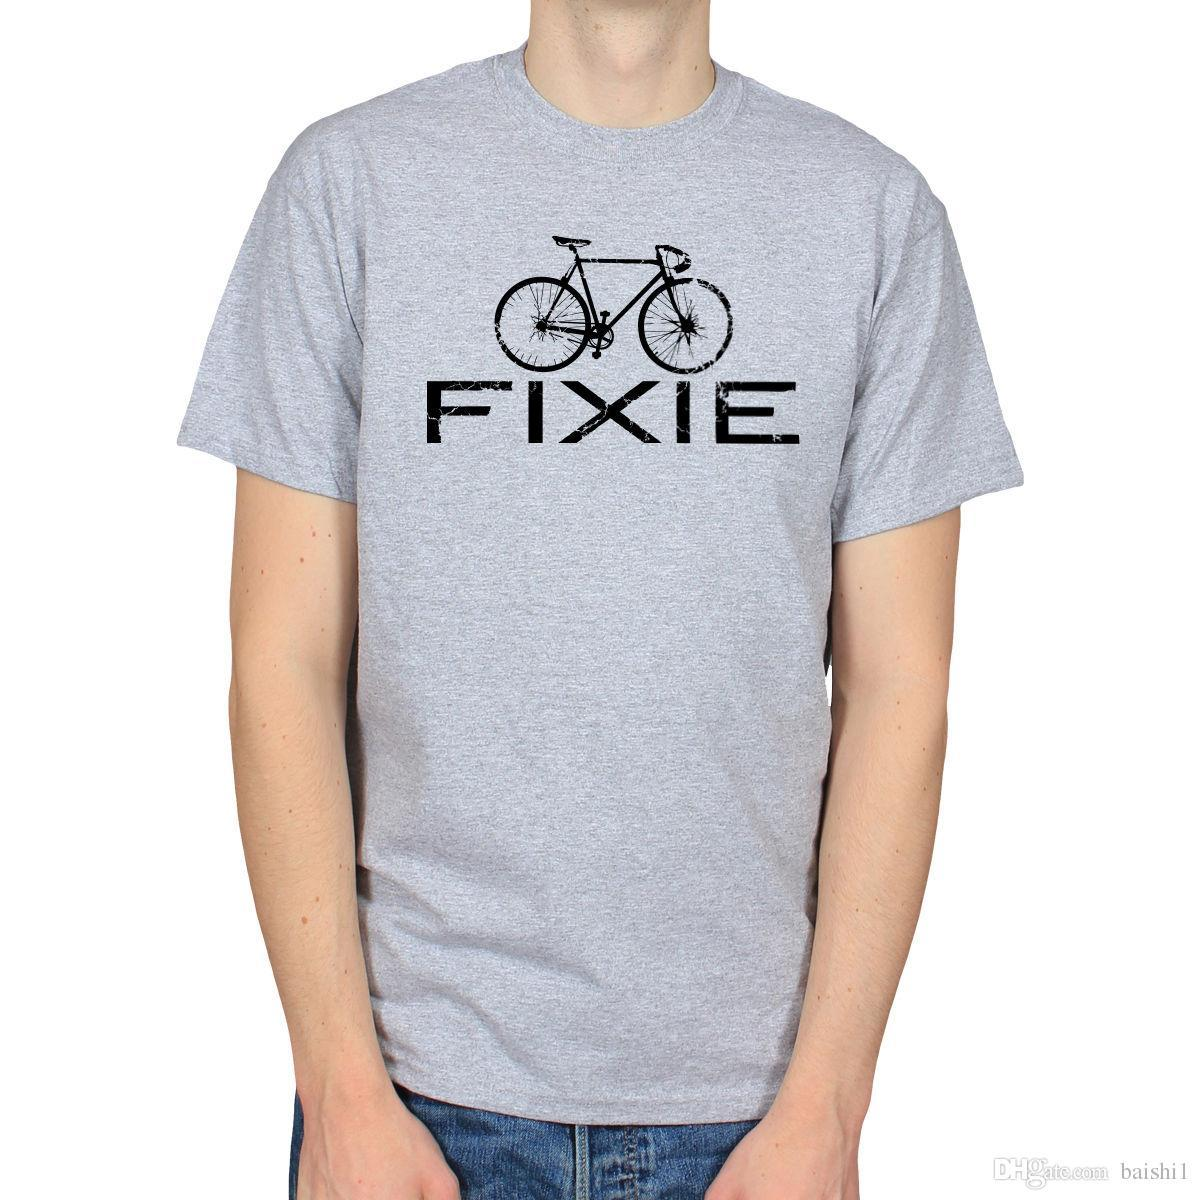 6b15a882d78d75 Acquista FIXIE BIKE FIXED GEAR BICYCLE SINGLE SPEED CYCLING HIPSTER T SHIRT  TEE Ment Shirts Summer Style A $14.67 Dal Jie62   DHgate.Com